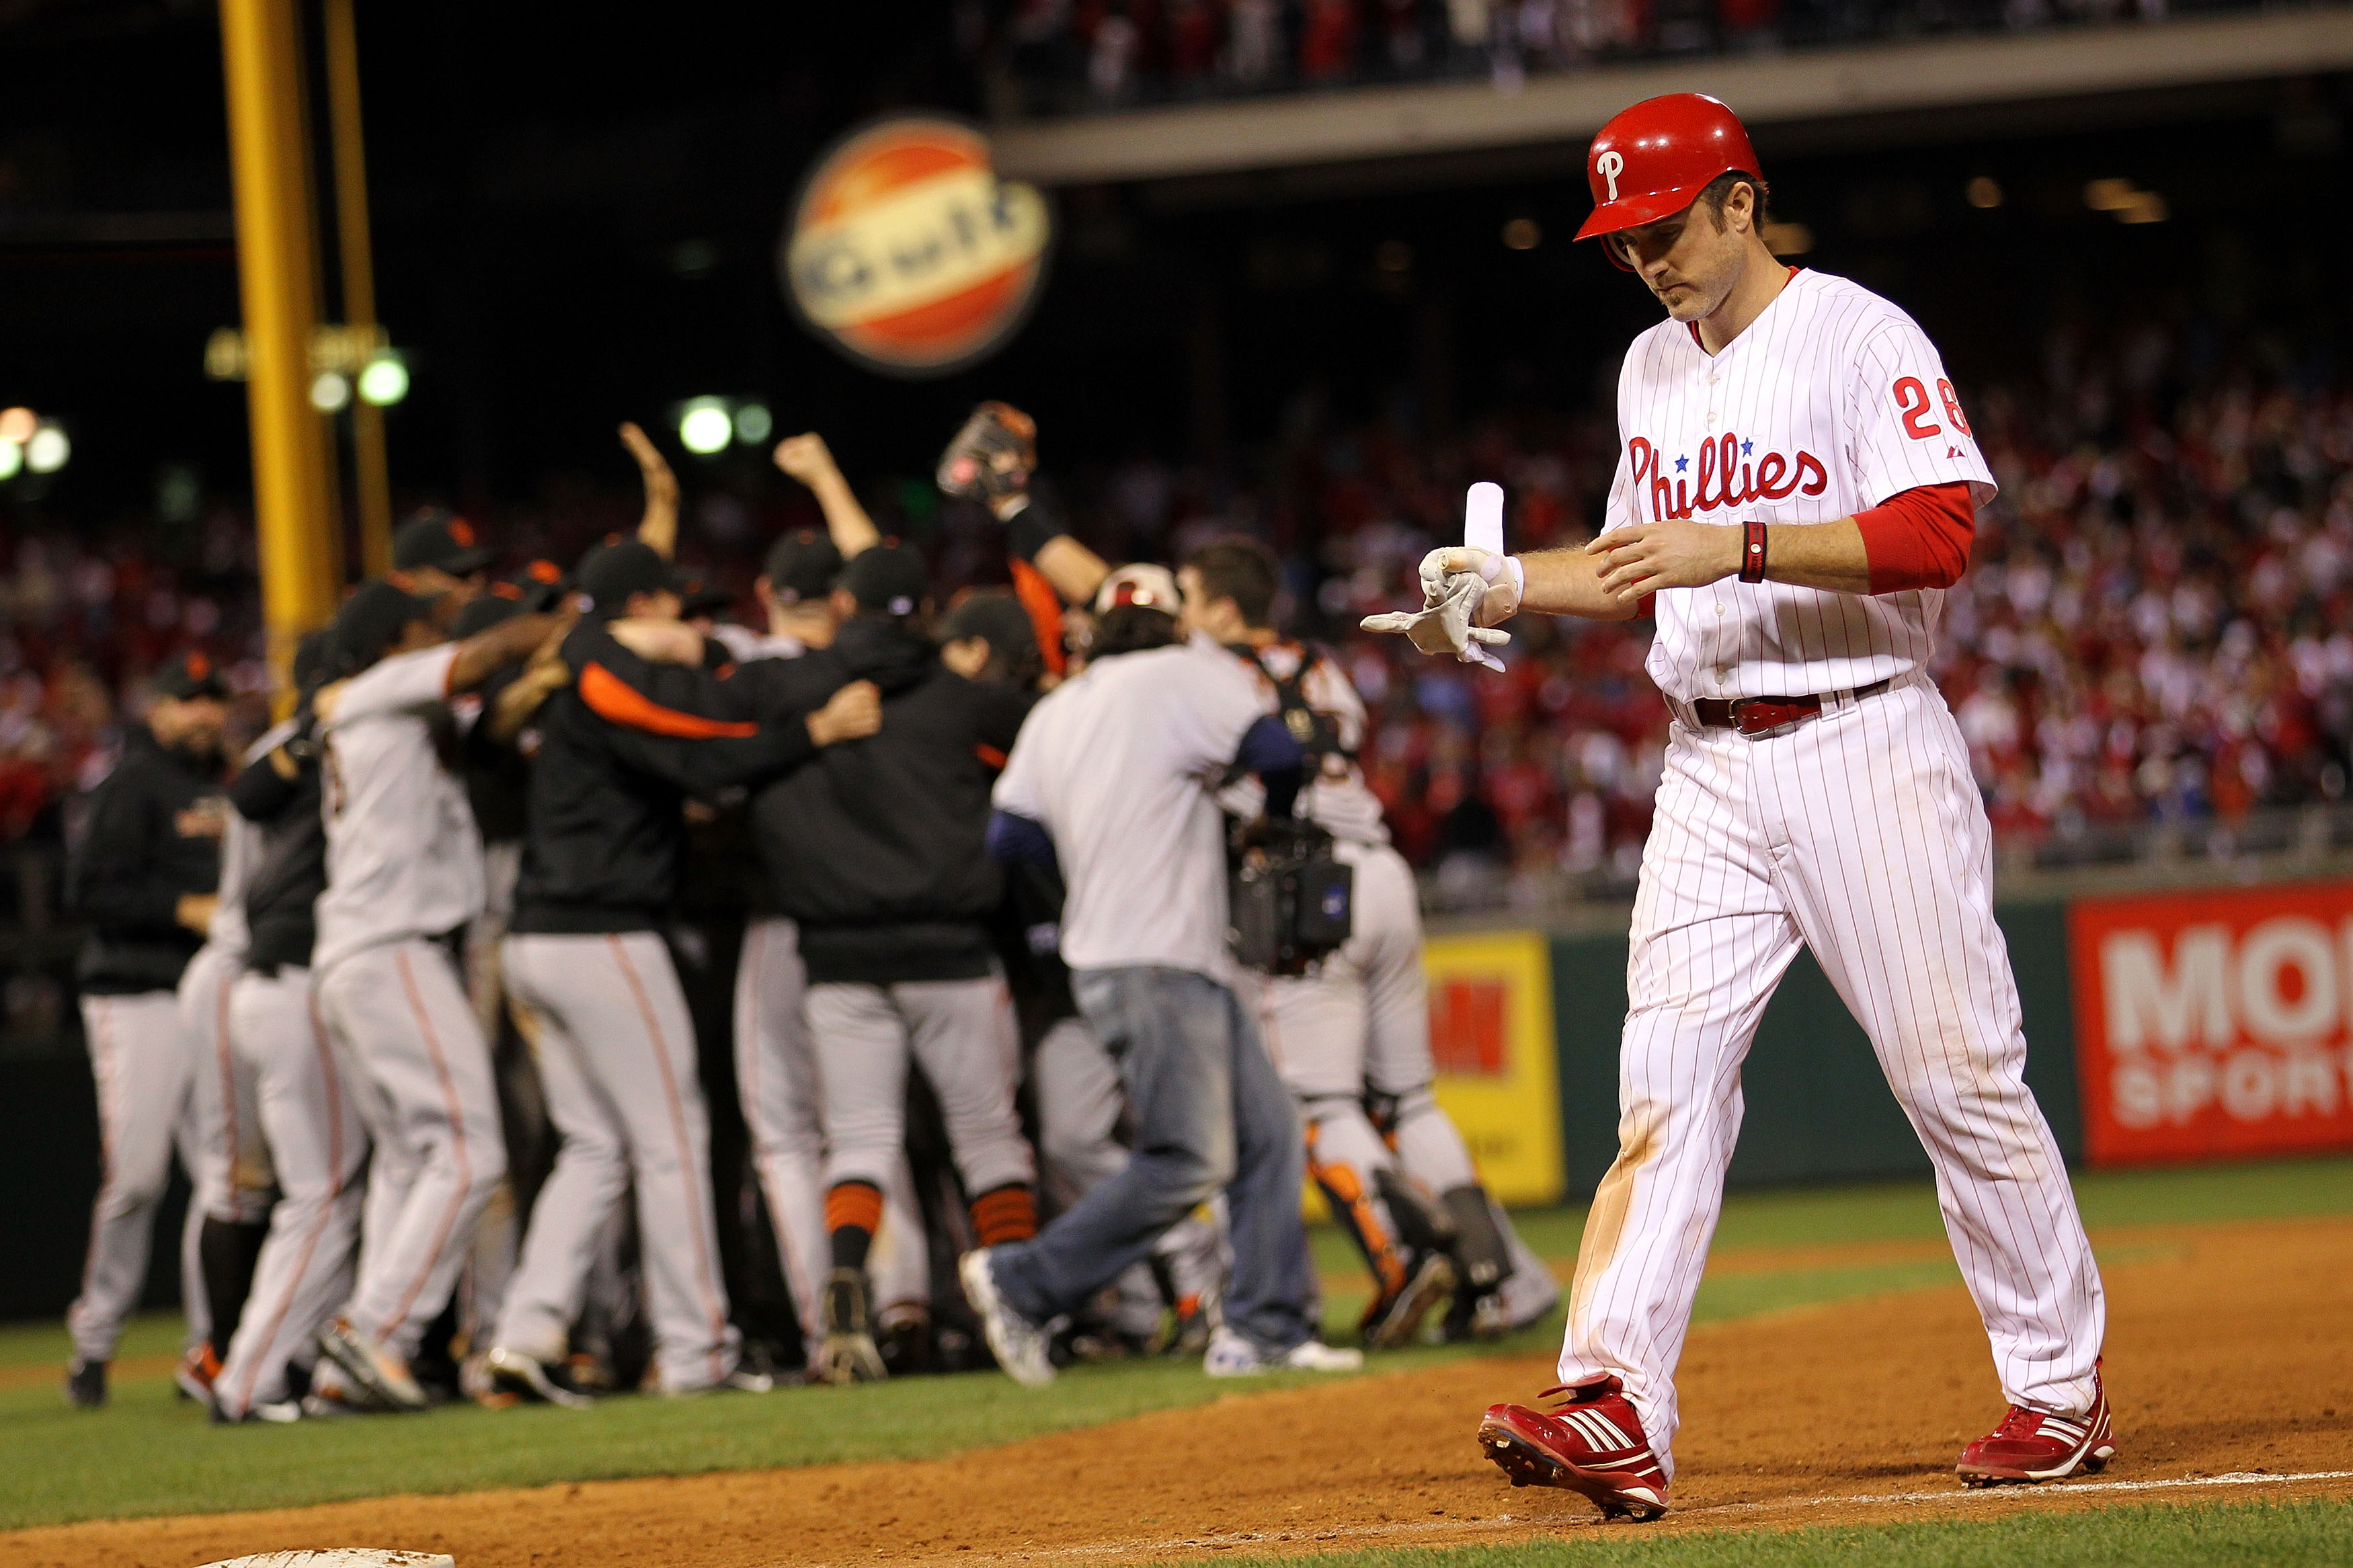 PHILADELPHIA - OCTOBER 23:  Chase Utley #26 of the Philadelphia Phillies walks off the field as the San Francisco Giants celebrate winning 3-2 to win the pennant in Game Six of the NLCS during the 2010 MLB Playoffs at Citizens Bank Park on October 23, 201